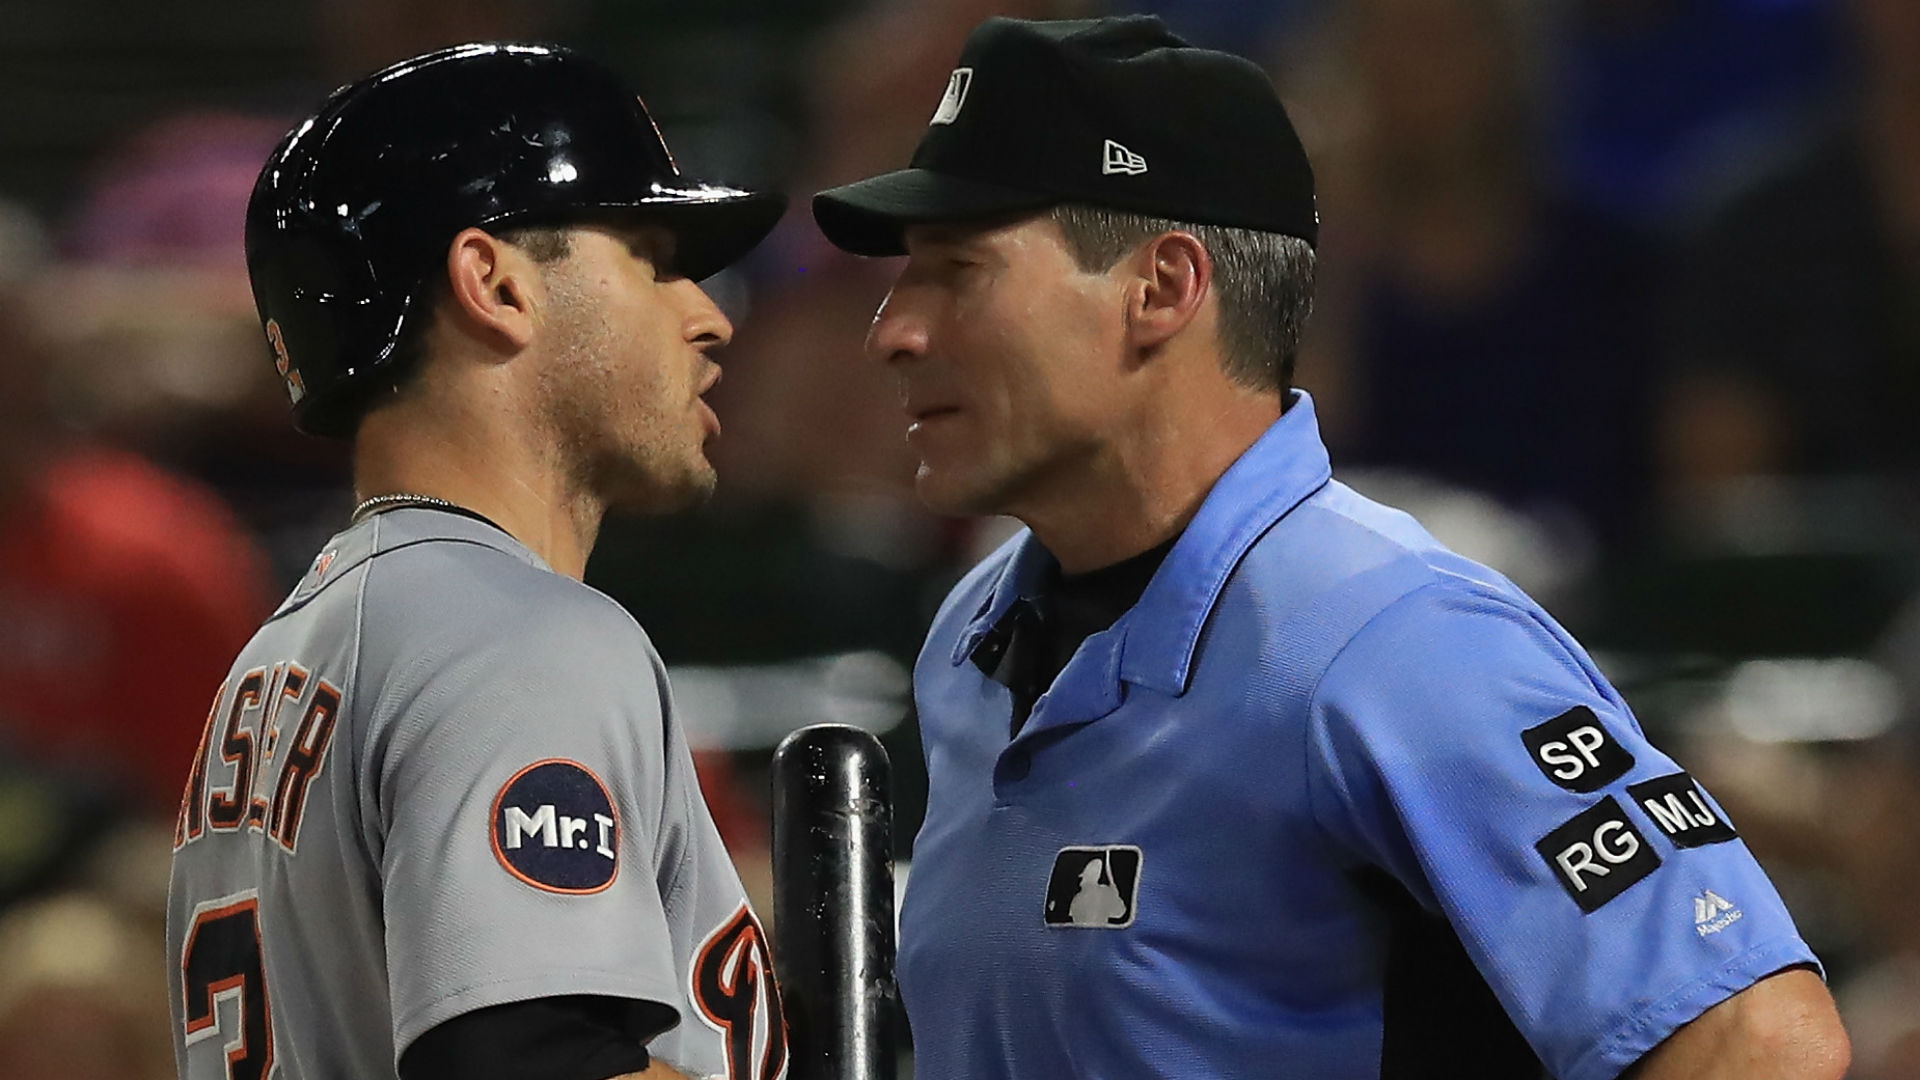 Umpires across Major League Baseball wear white wristbands in protest